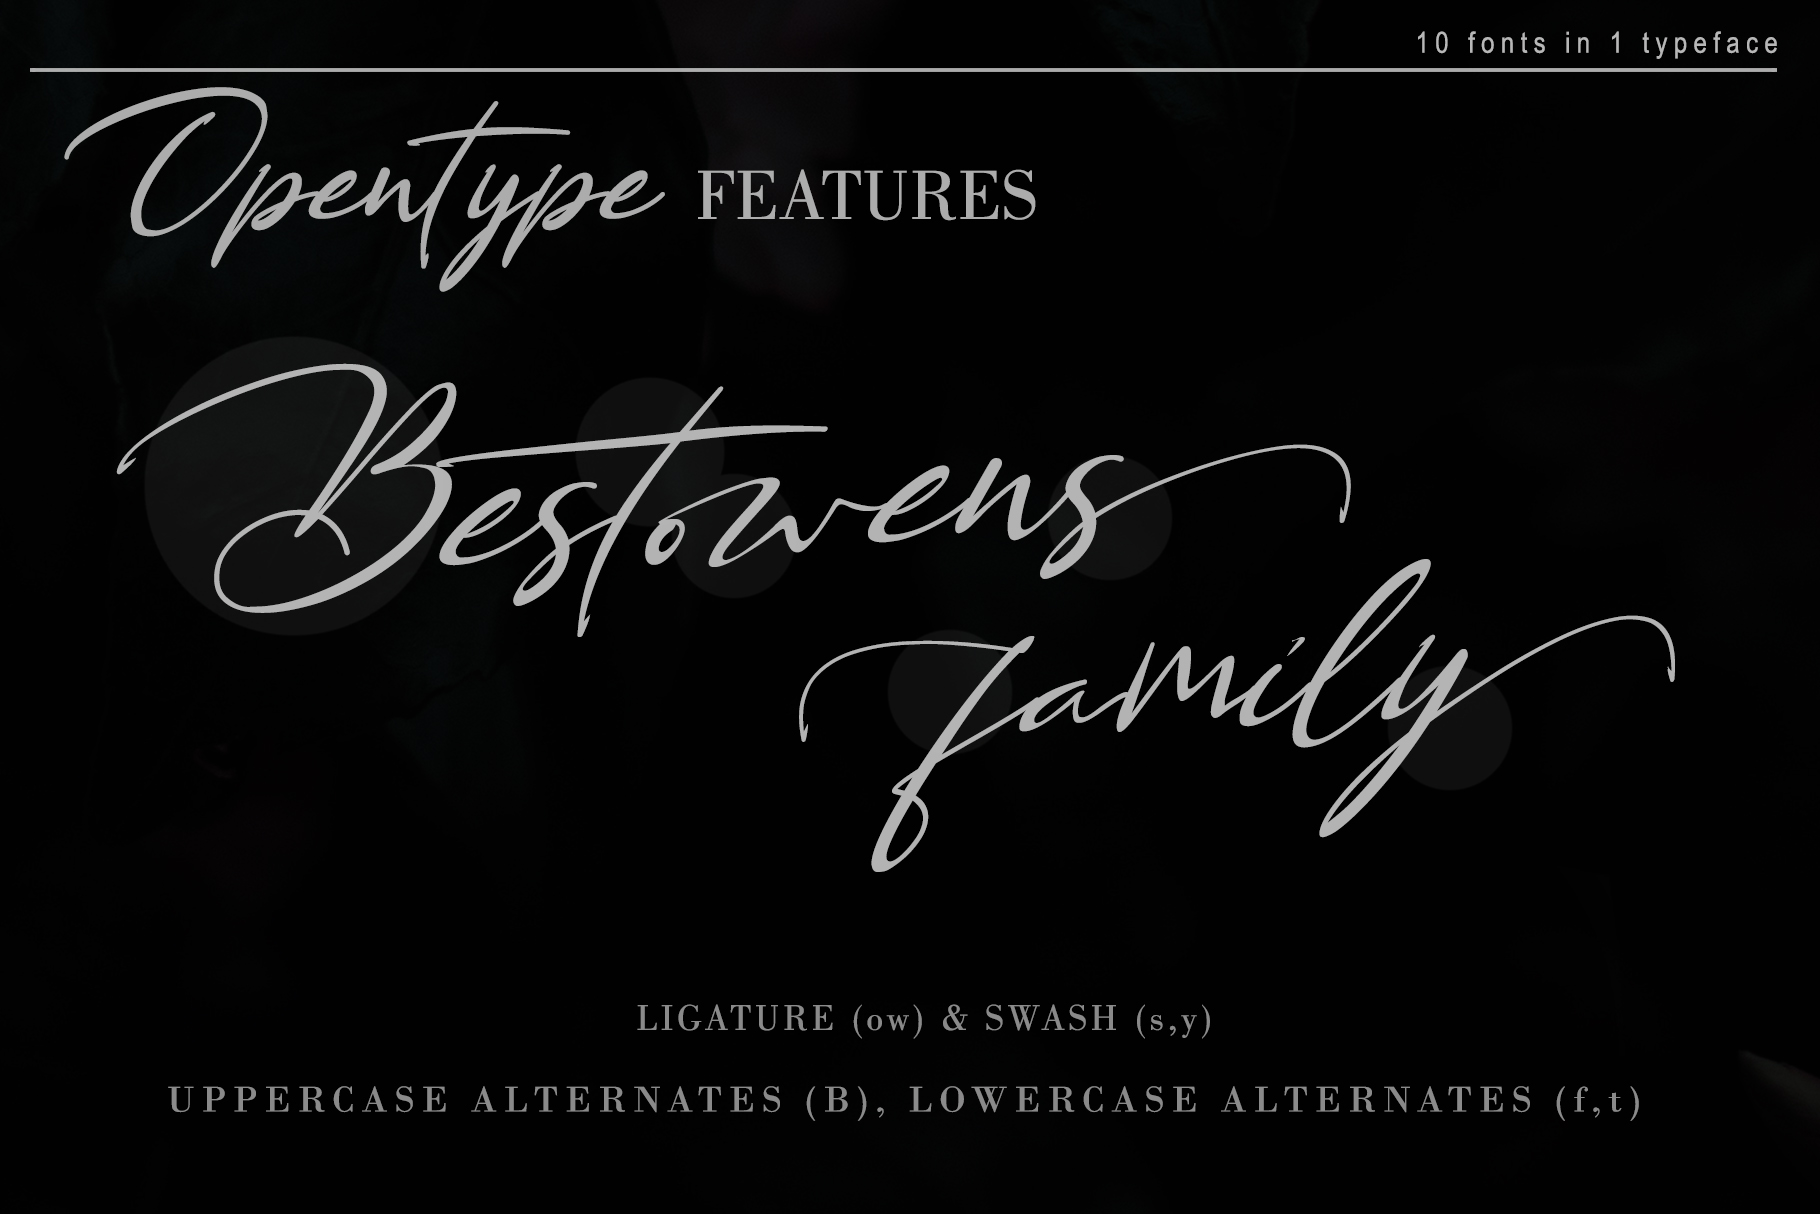 Bestowens family example image 4